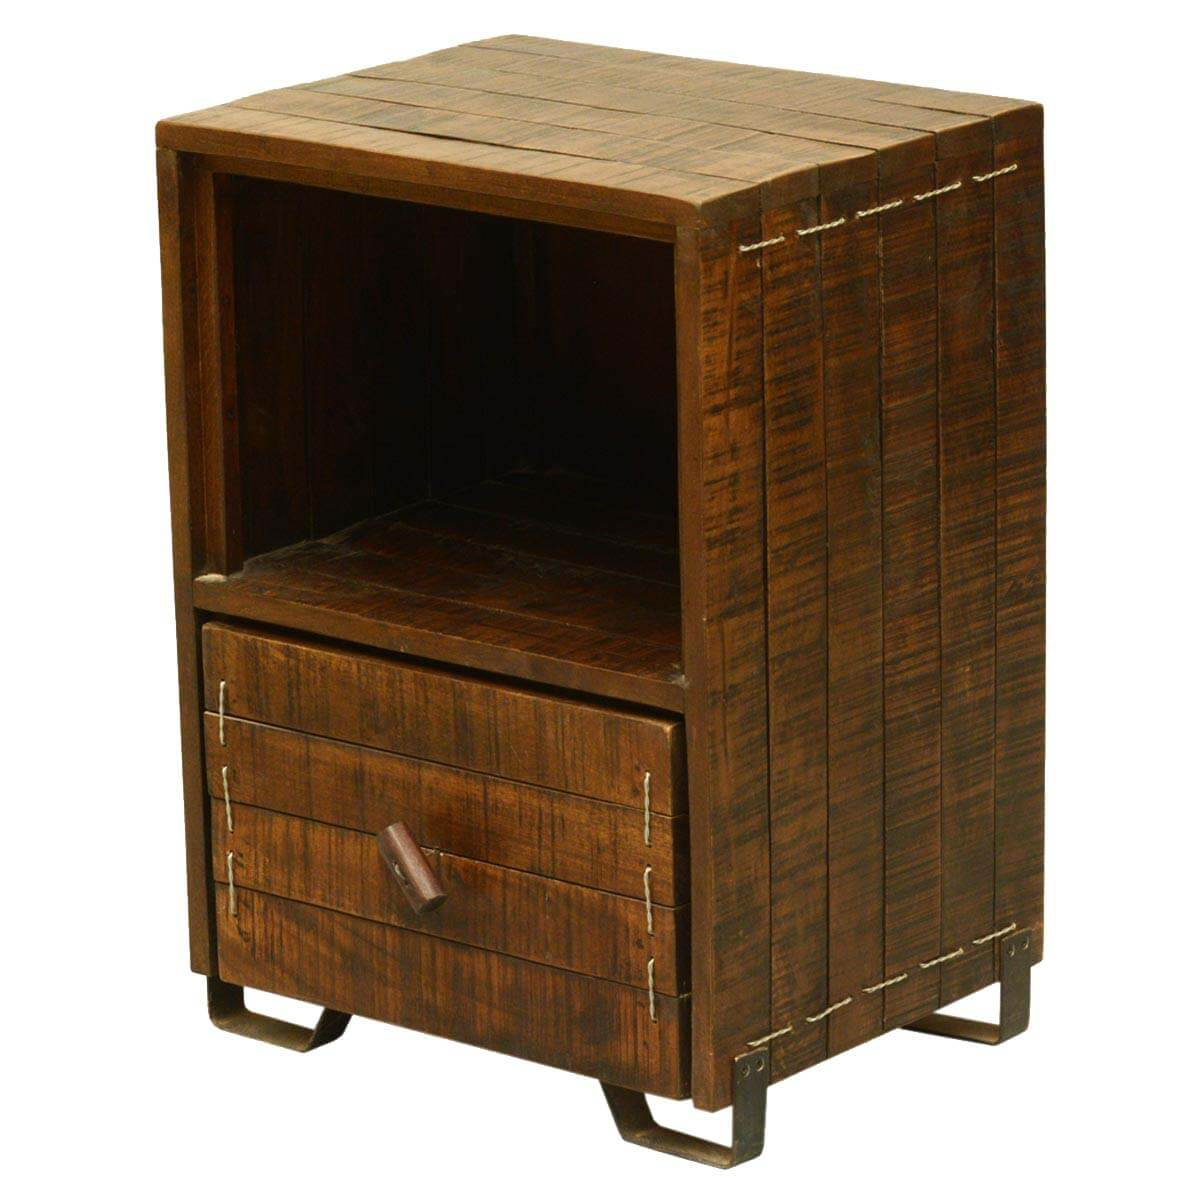 Modern scholar reclaimed wood single drawer end table for Large side table with drawers